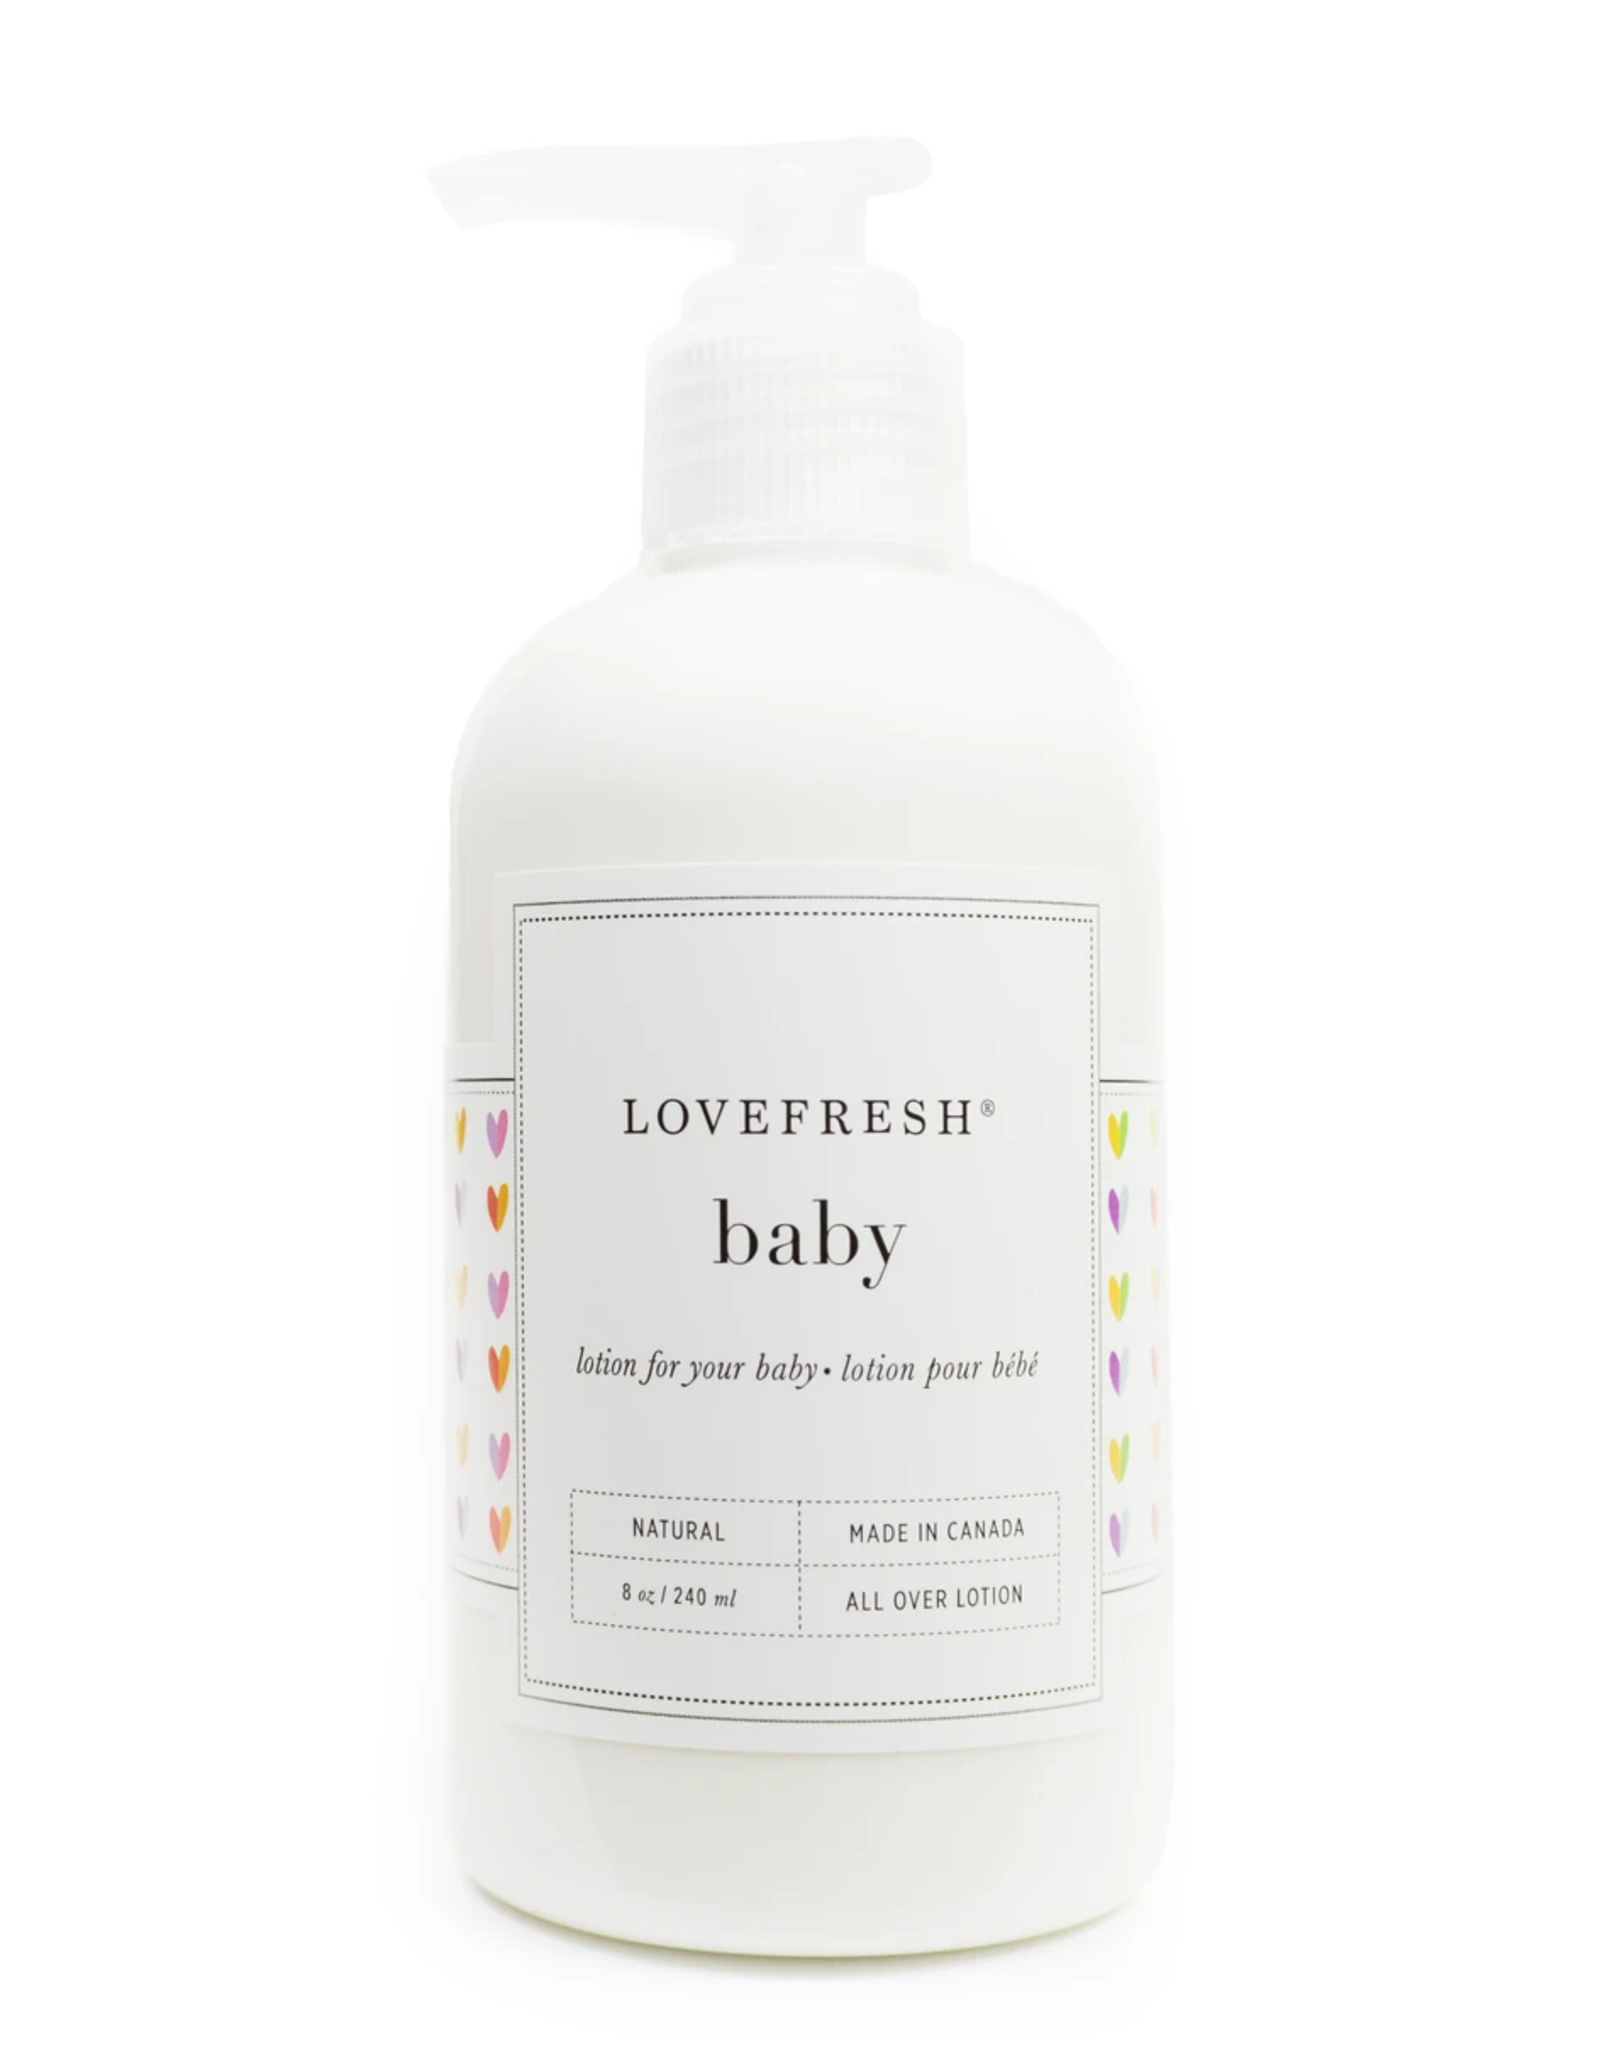 Lovefresh Baby Lotion - Lovefresh